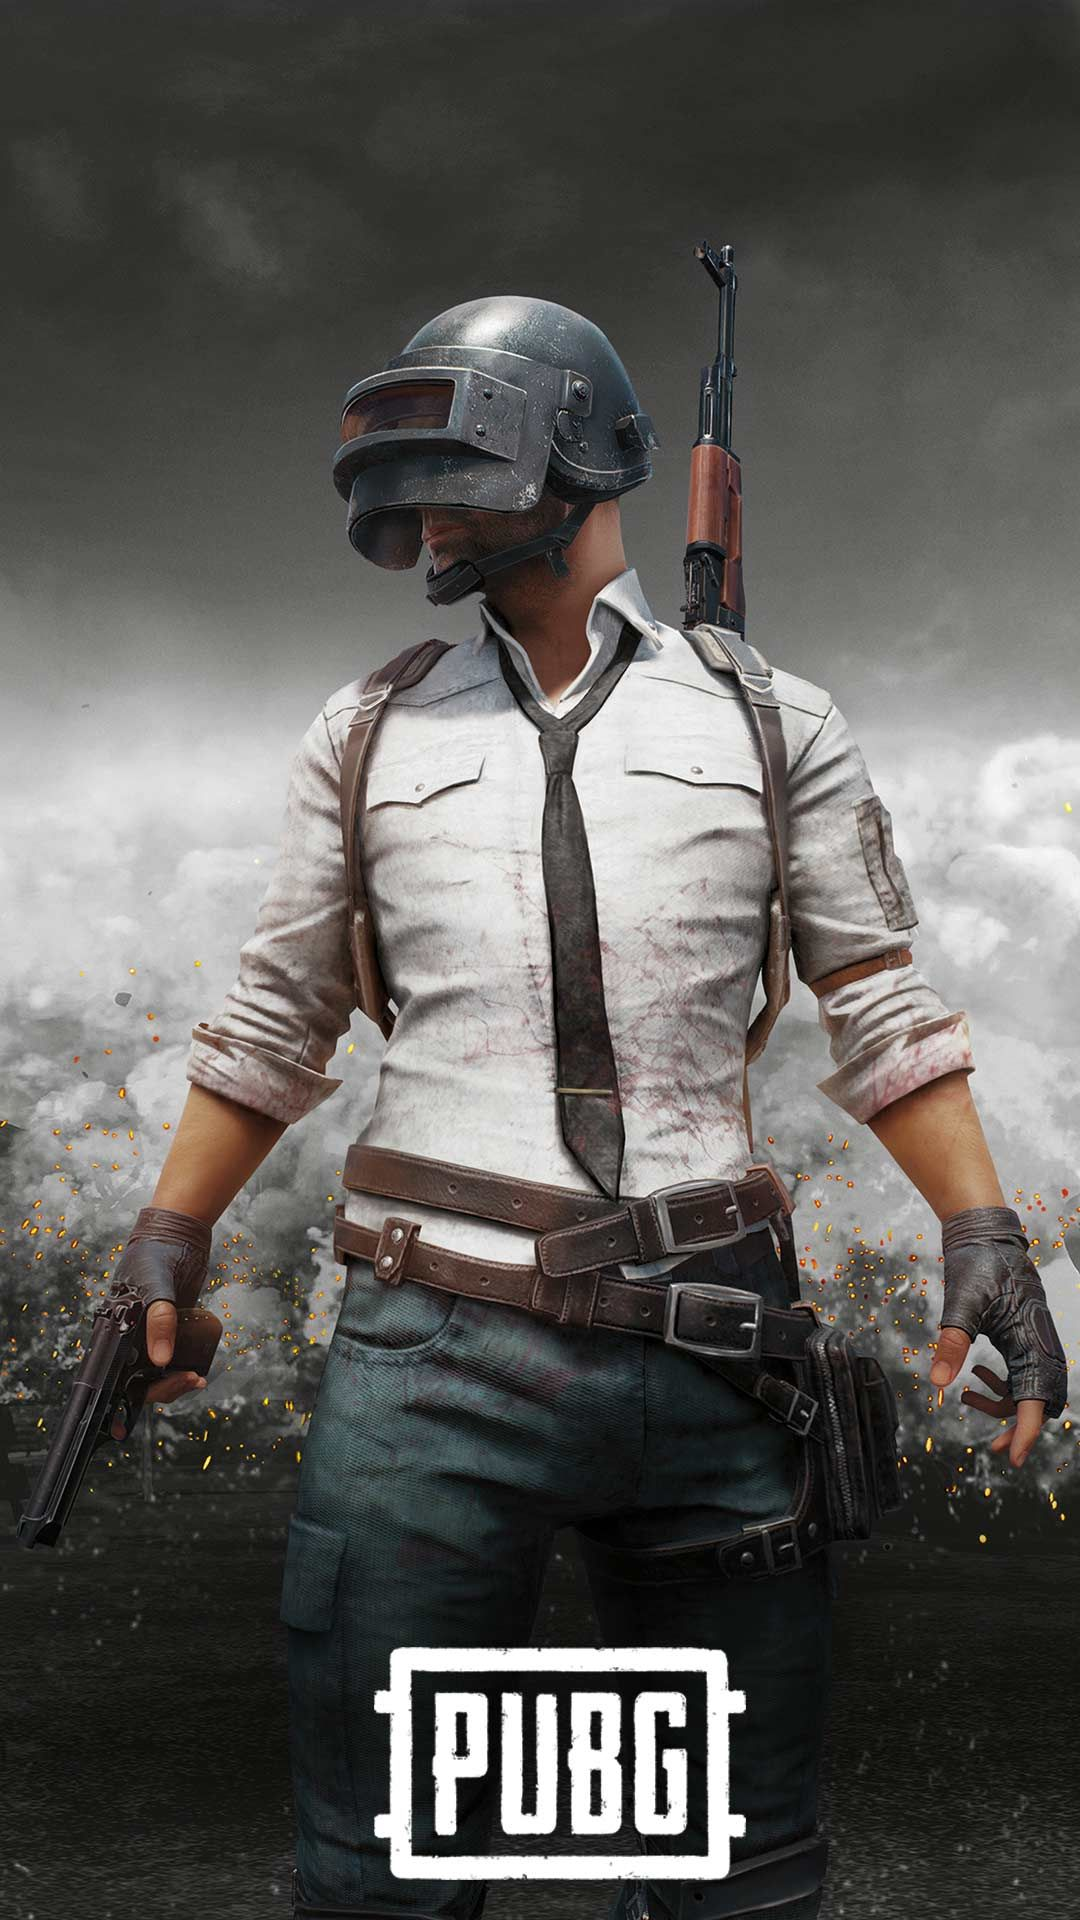 20 Pubg Mobile Wallpaper Hd Android Phone Backgrounds Download Mobile Wallpaper Android Android Phone Wallpaper Android Wallpaper